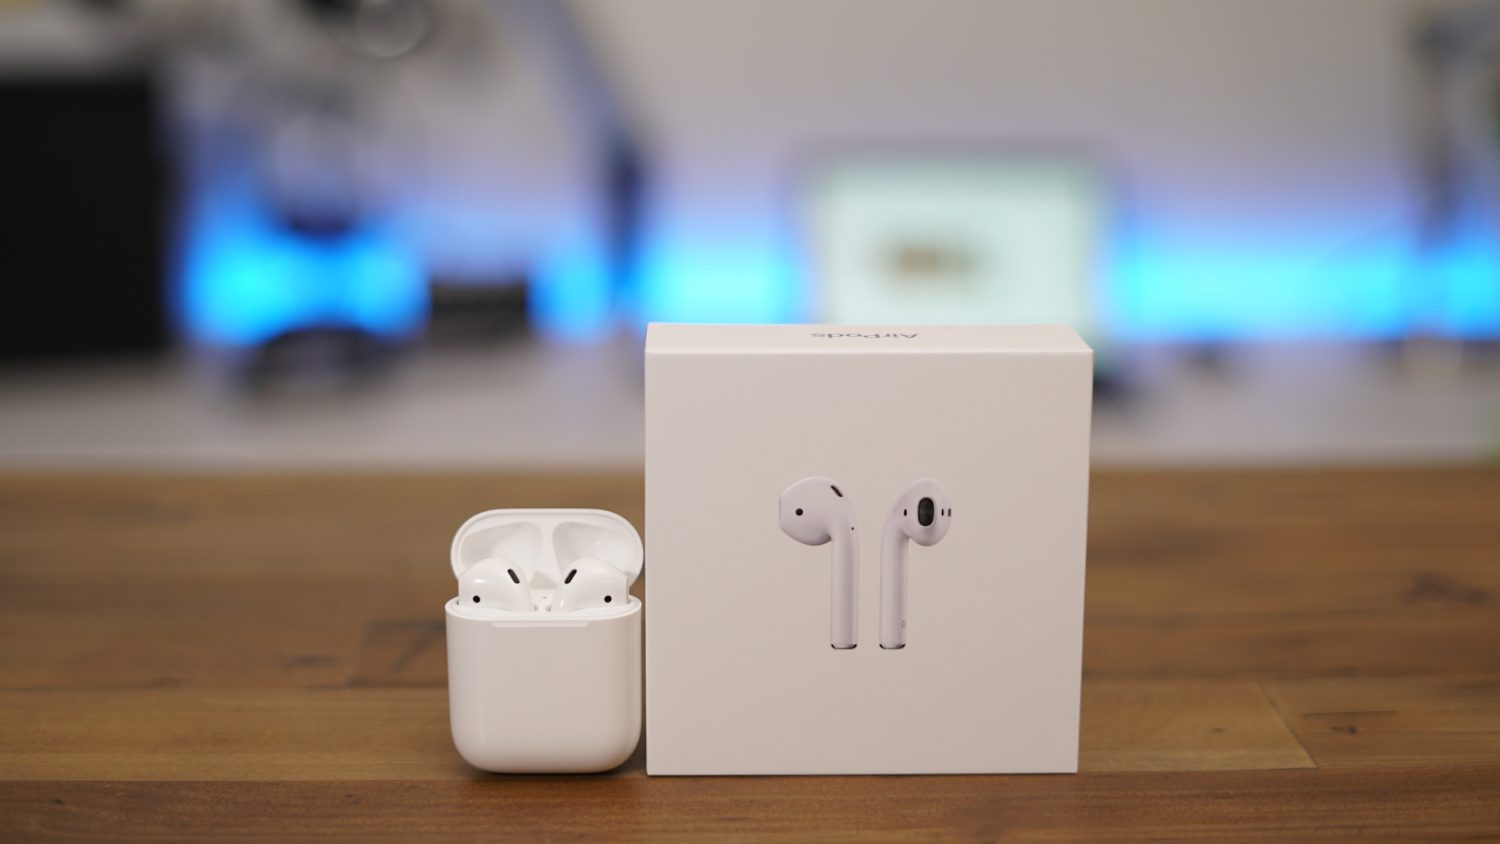 the colors in which these new AirPods would arrive